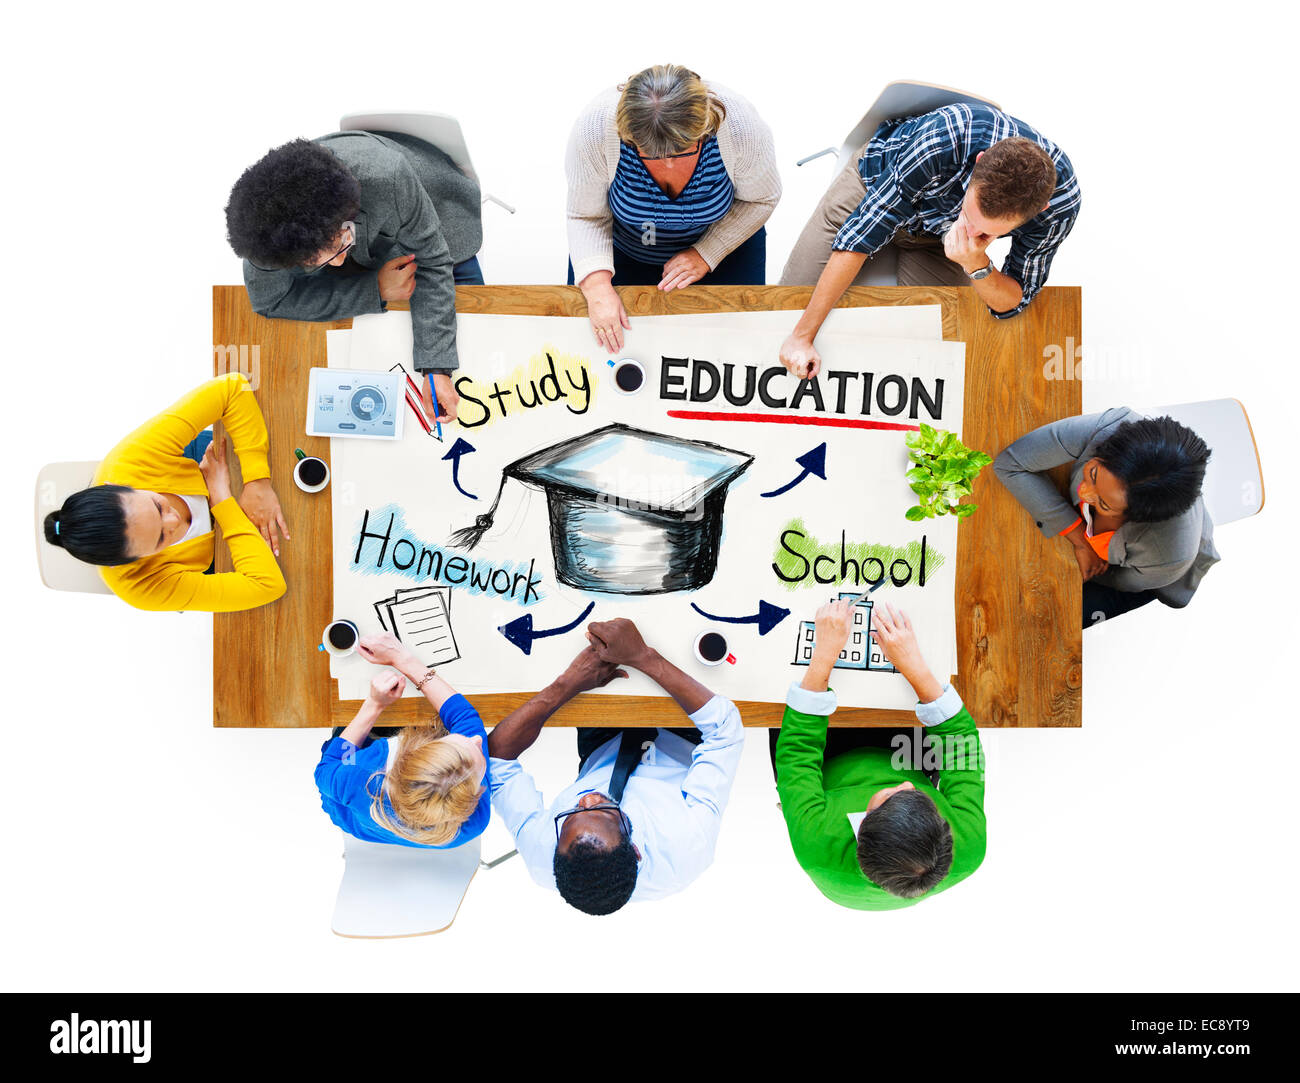 Business People in a Meeting with Education Concept - Stock Image